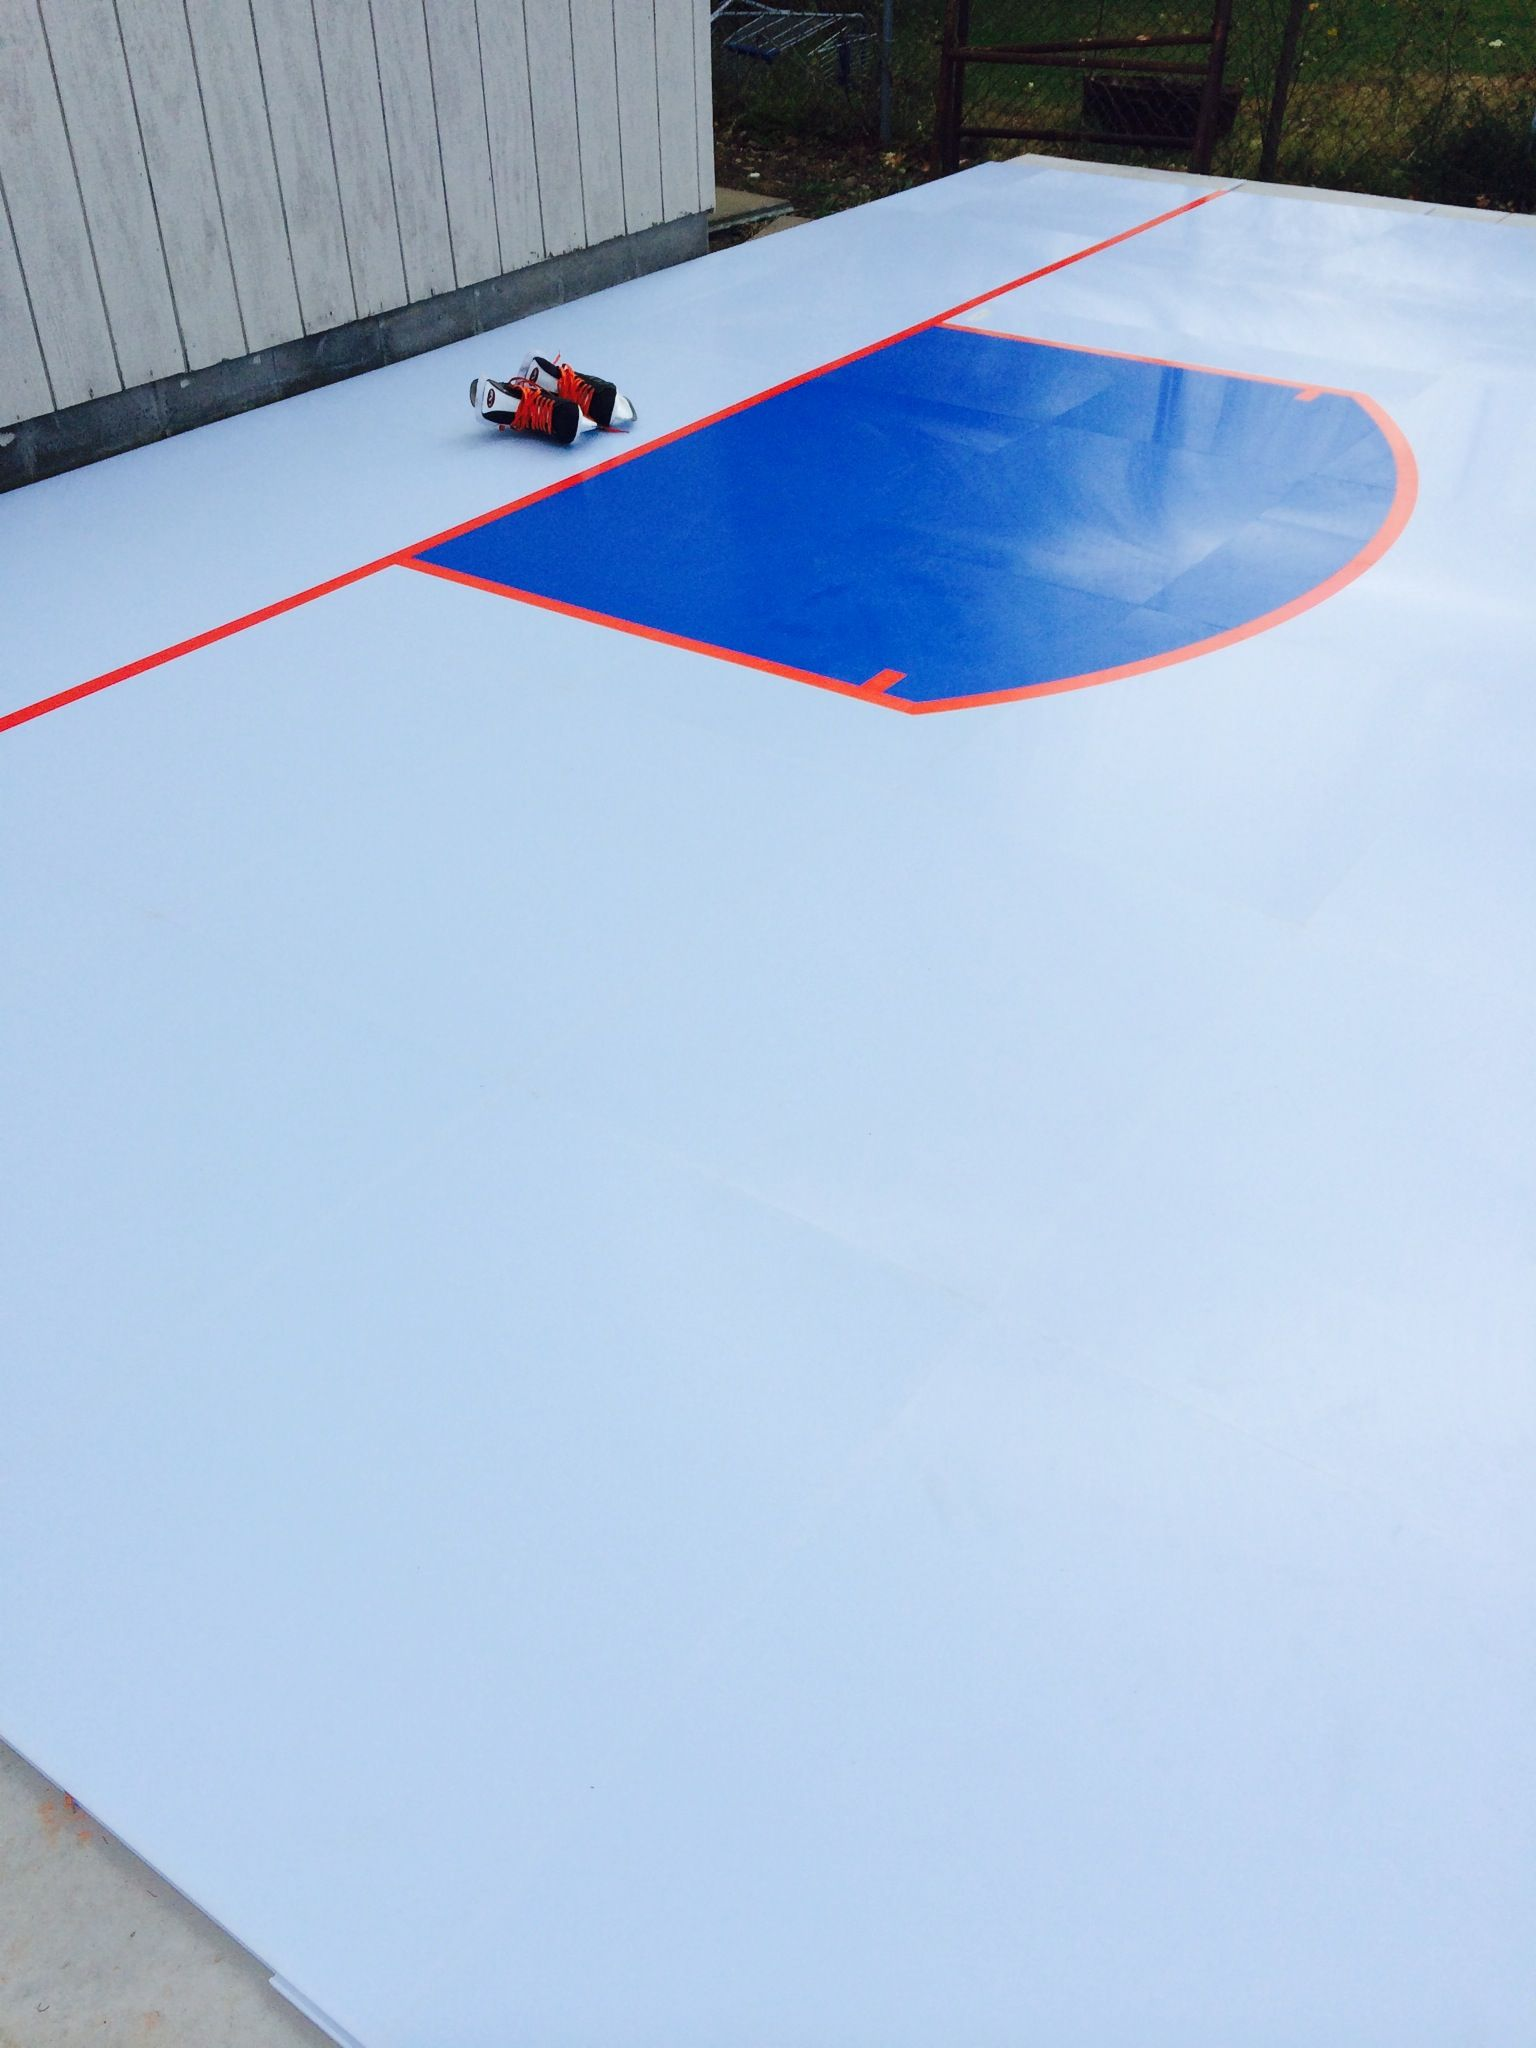 The SmartRink Synthetic Ice Goal Crease. Ice RinkBackyard BusinessHockeyProjects